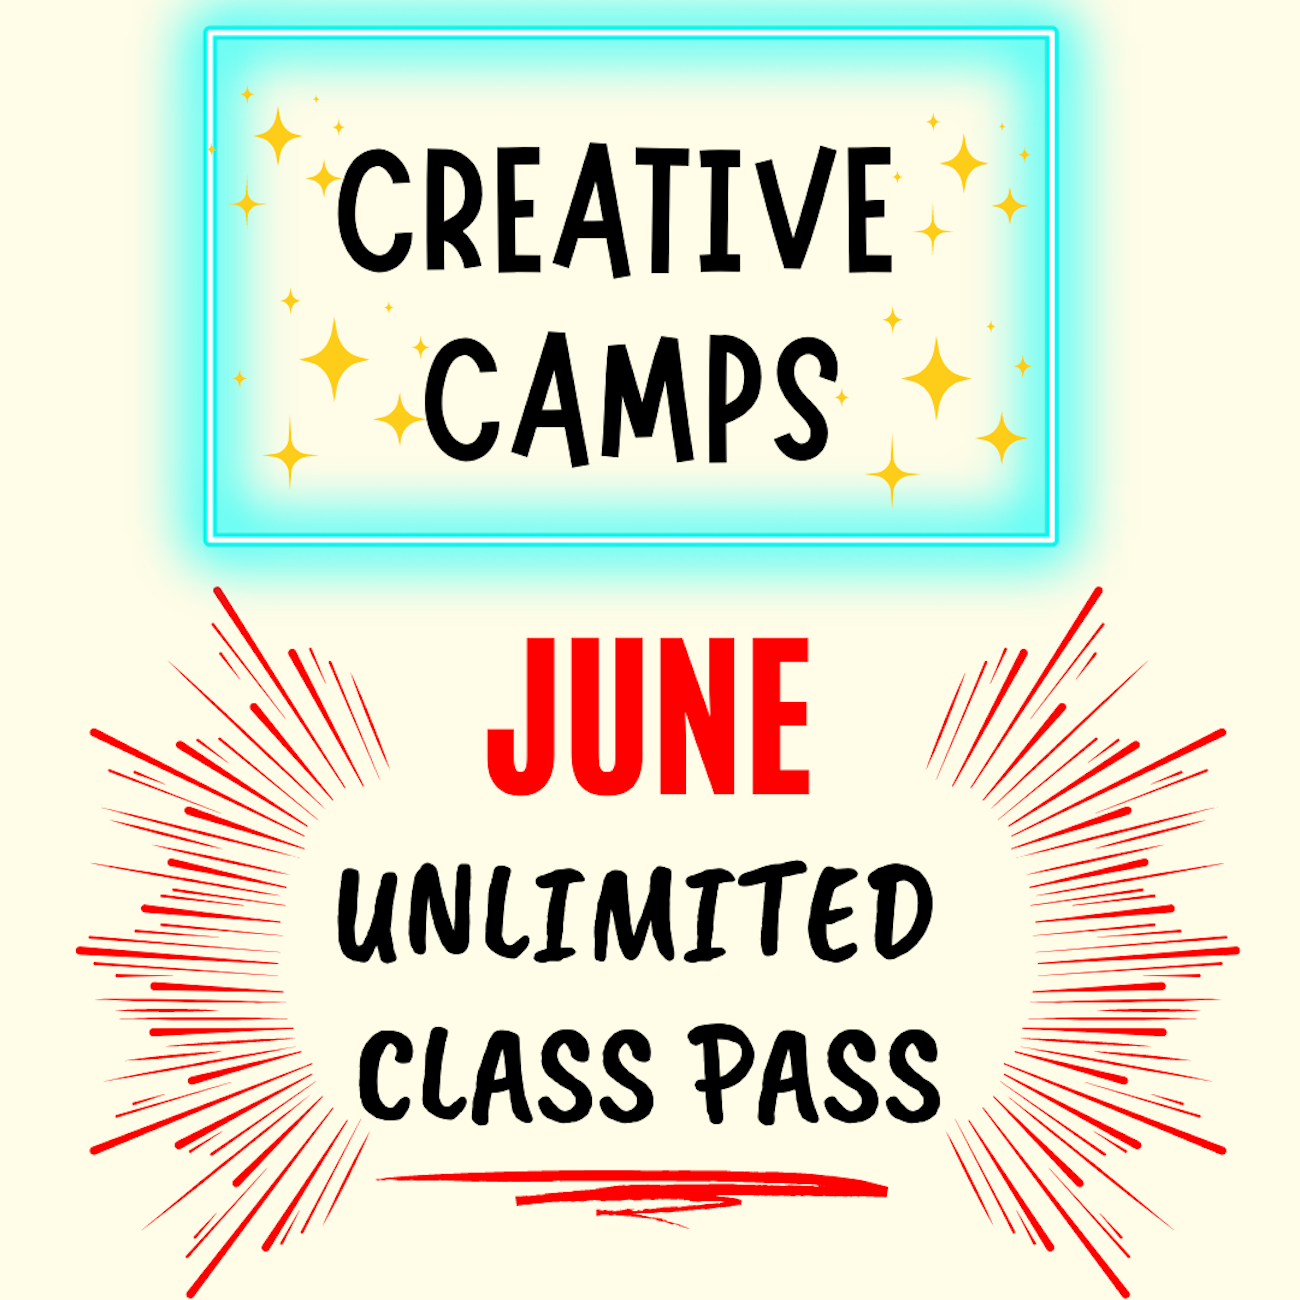 JUNE UNLIMITED CLASS PASS **Creative Camps**